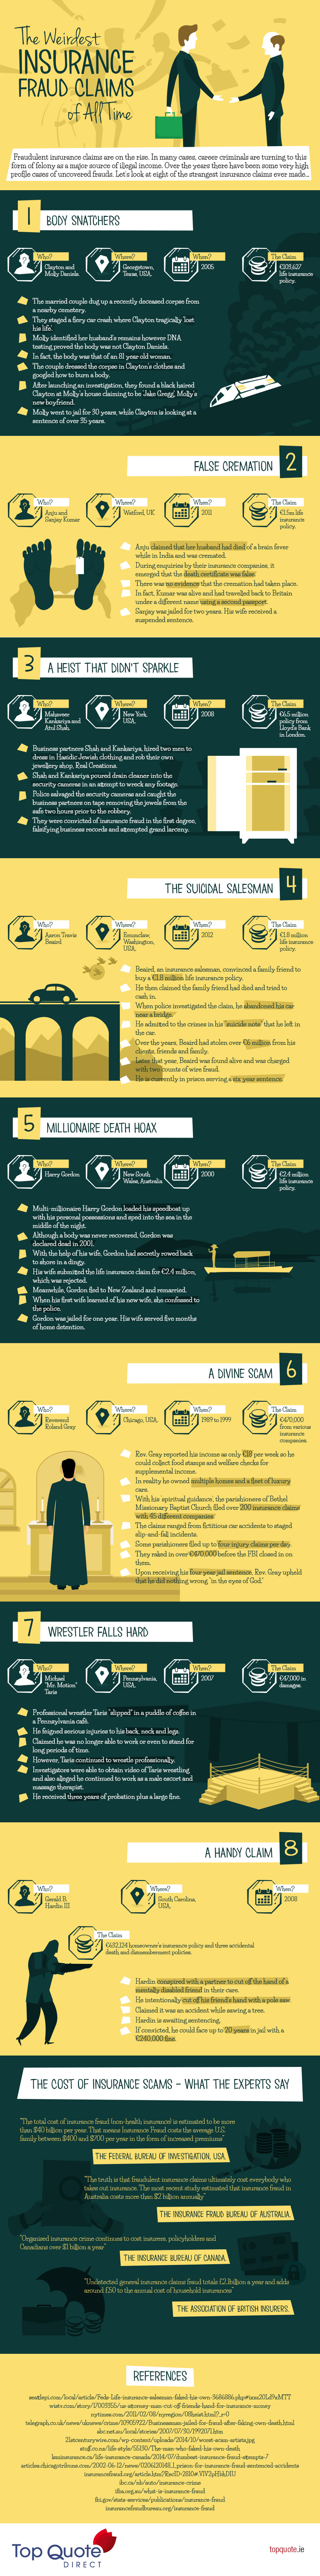 Weirdest-Insurance-Claim-Frauds-of-All-Time-Infographic